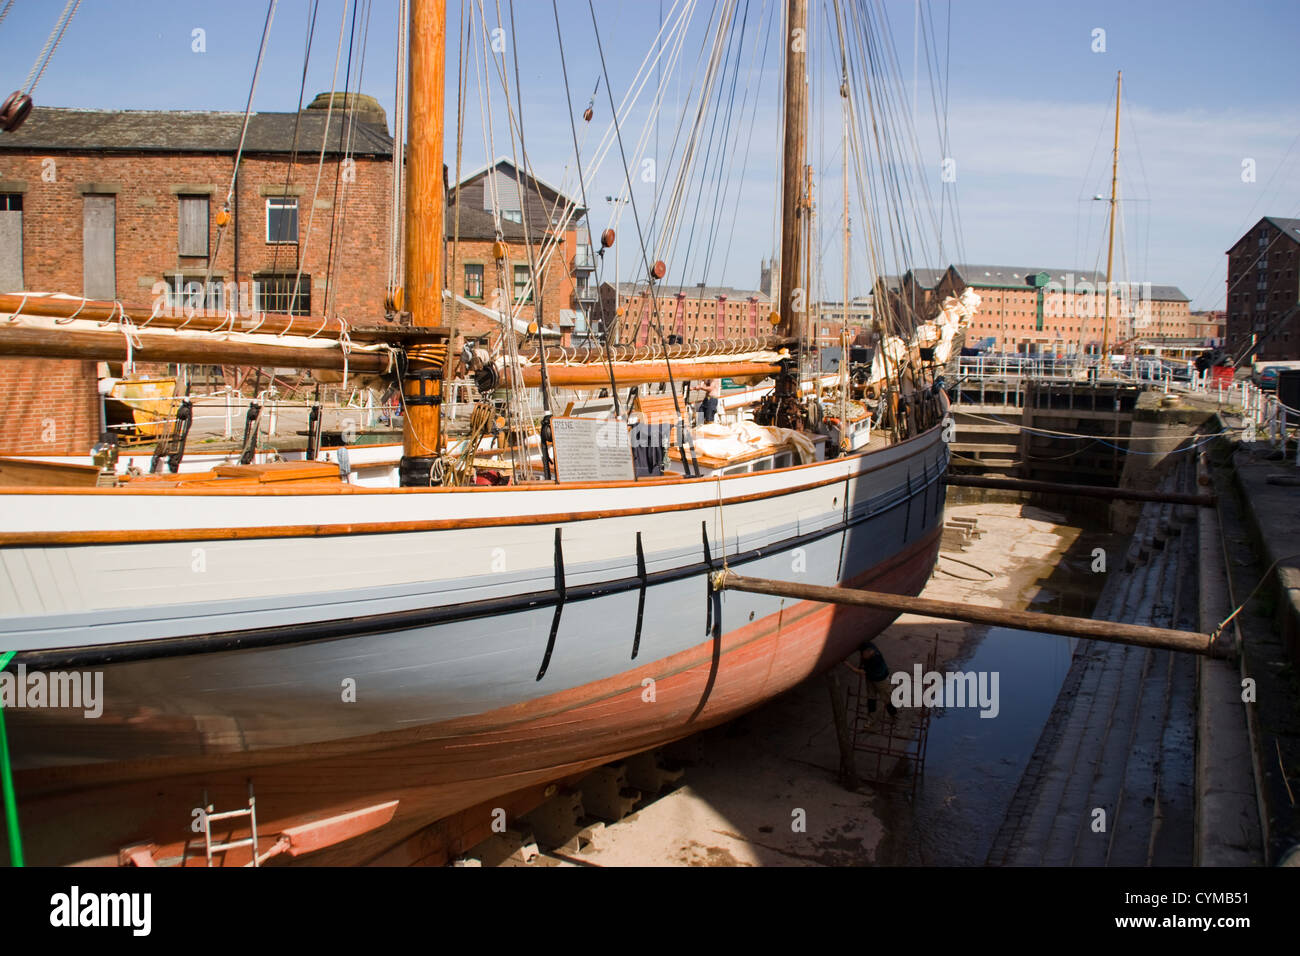 Trading Ketch Irene in dry dock canal basin Gloucester Docks Gloucestershire England UK - Stock Image